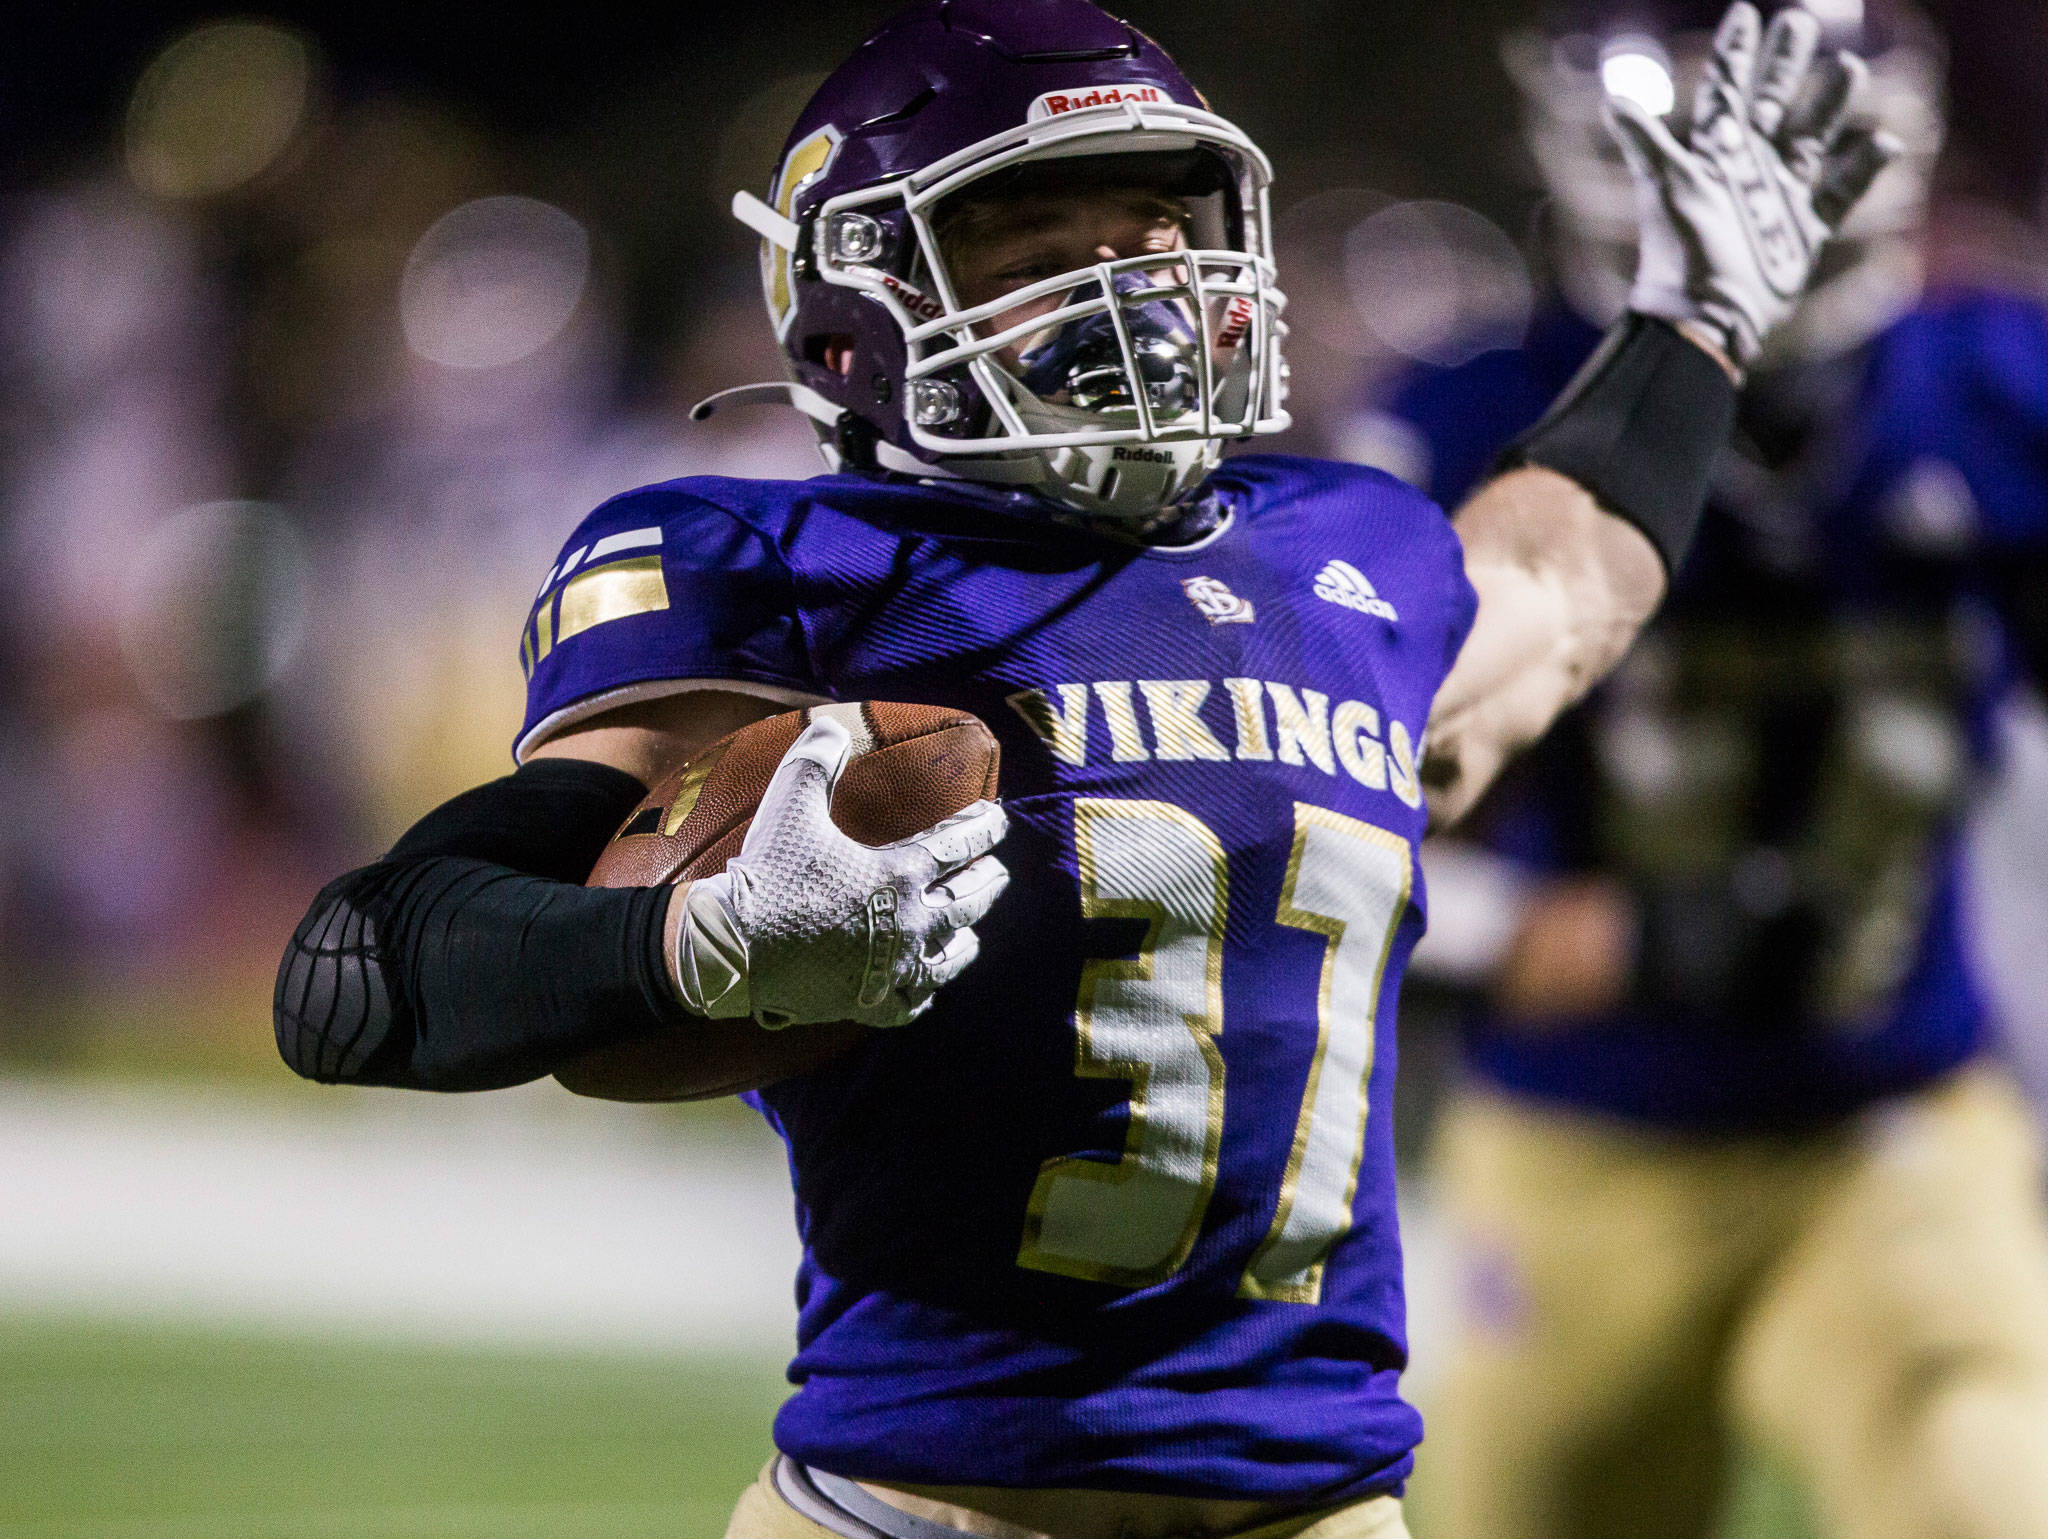 Lake Stevens running back Jay Roughton runs in for a touchdown during a game against Archbishop Murphy on March 6 in Lake Stevens. (Olivia Vanni / The Herald)